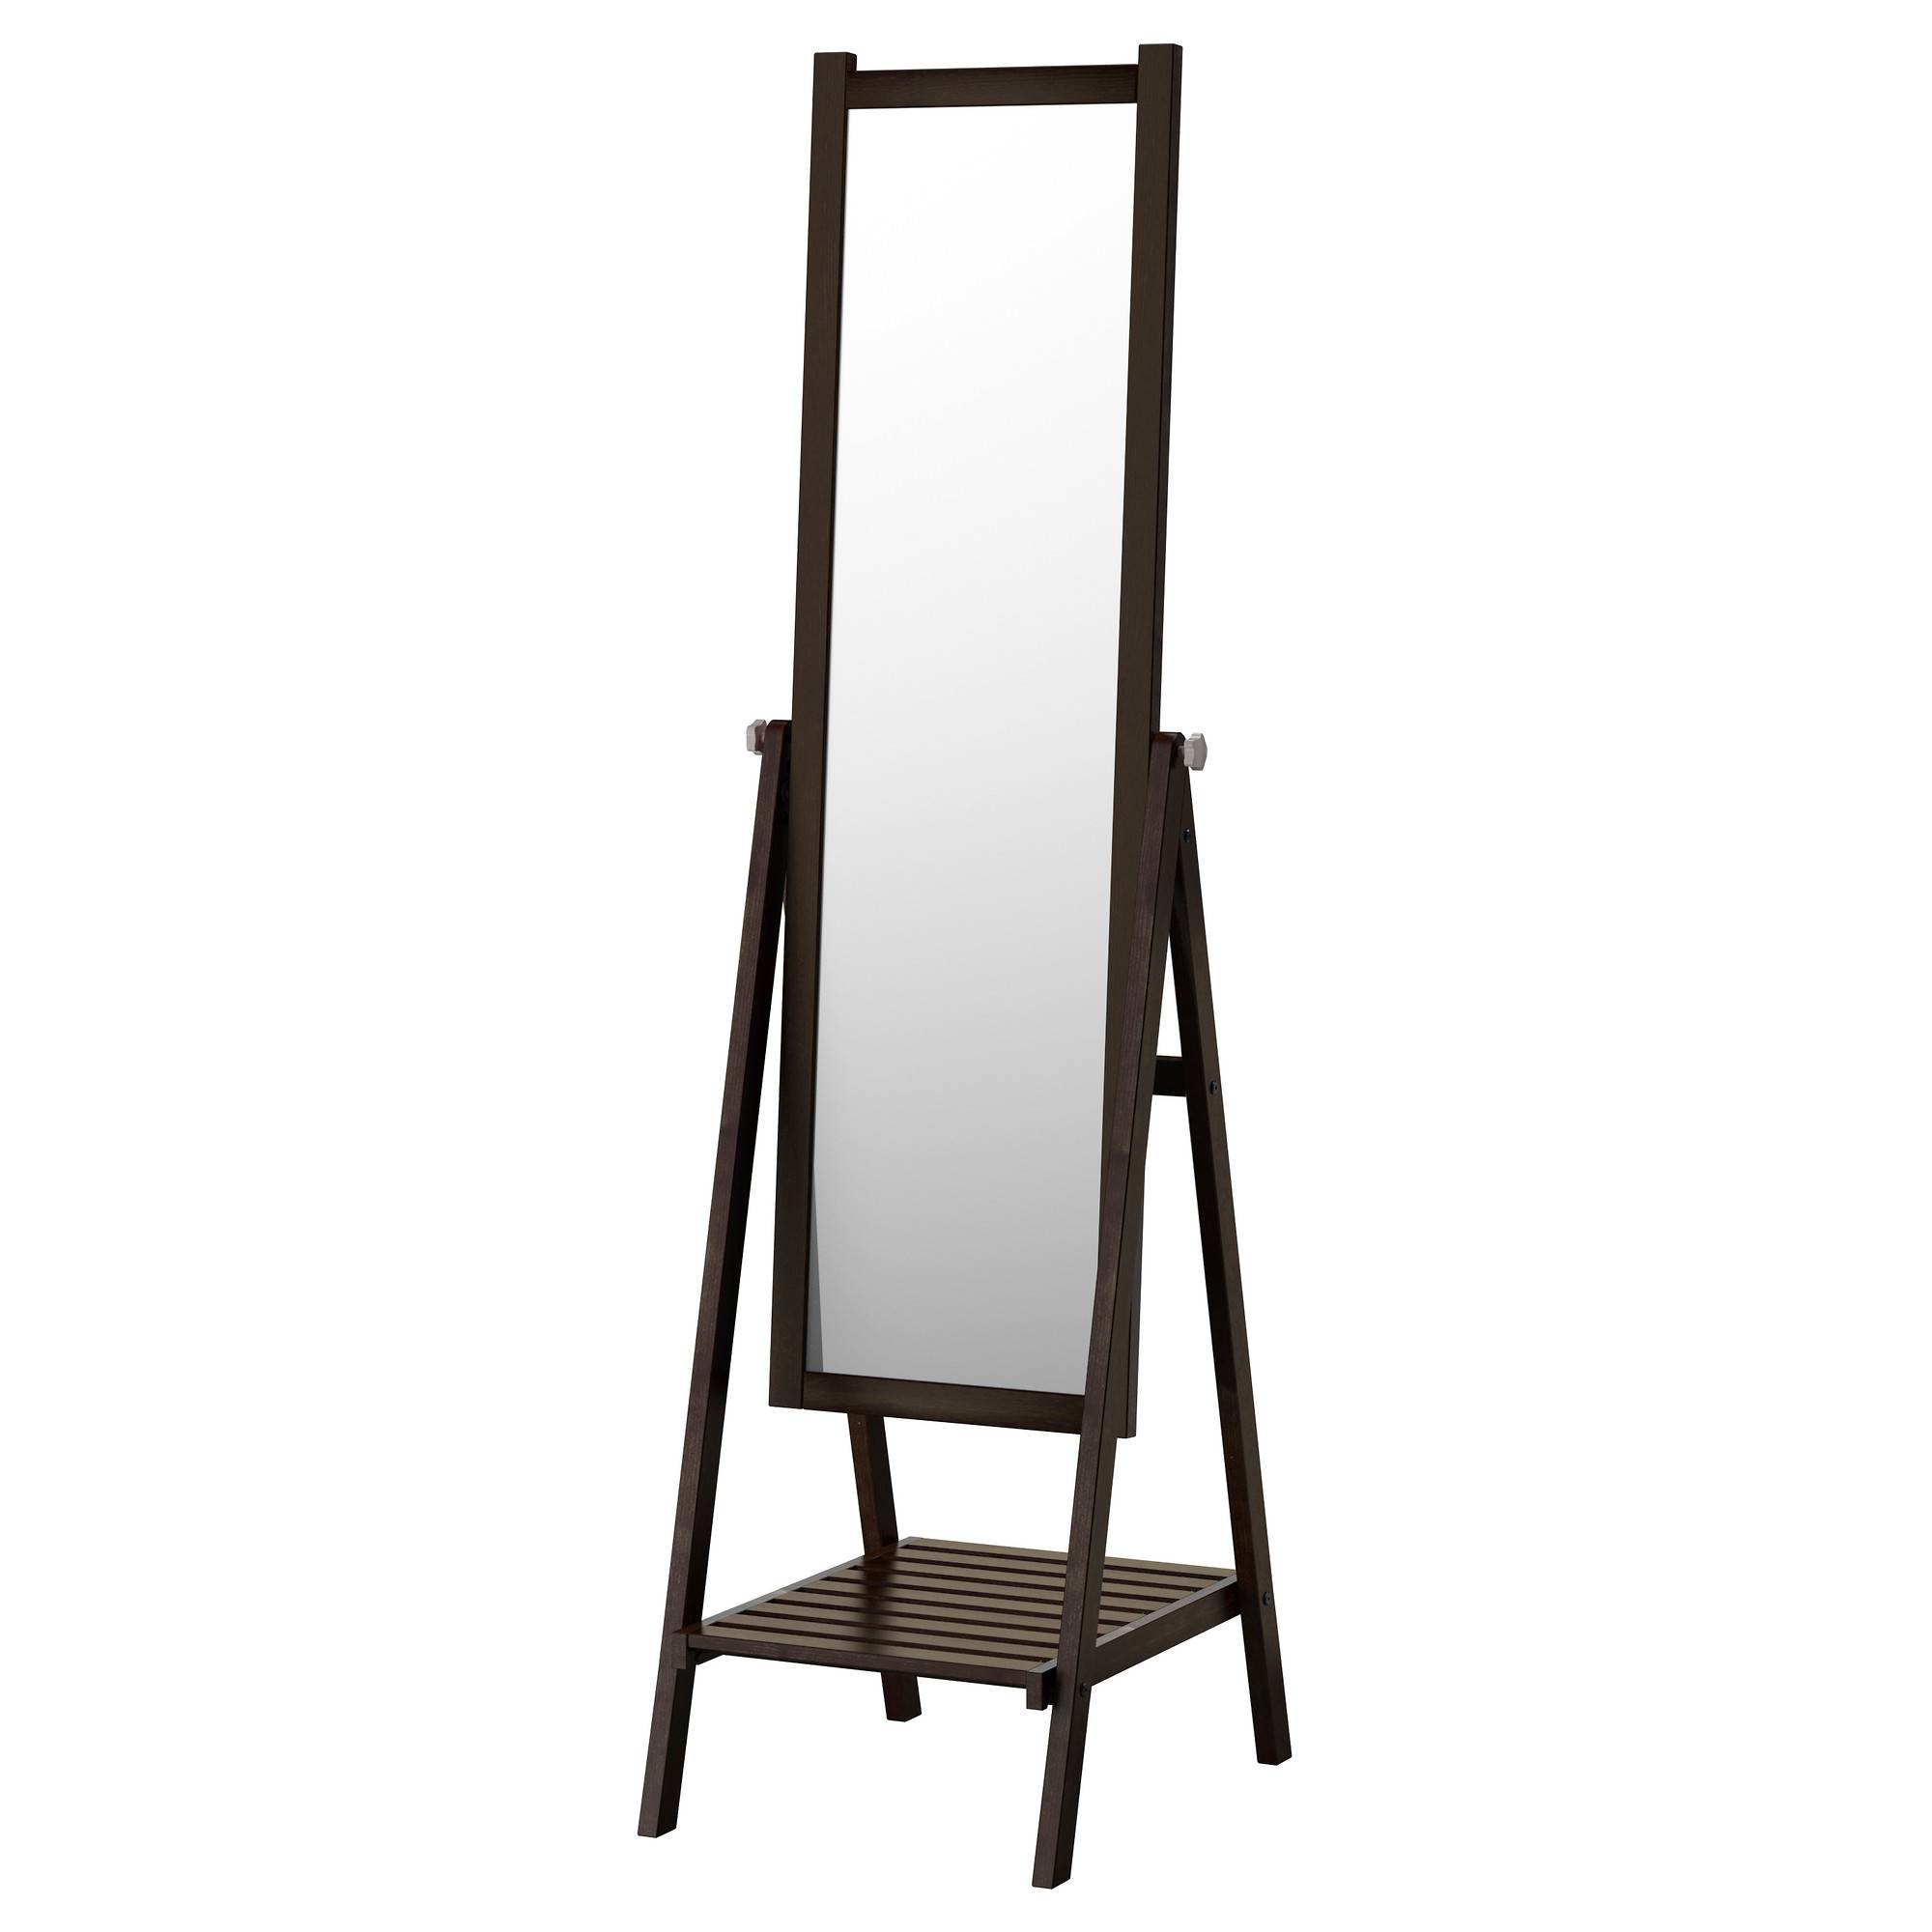 Isfjorden Standing Mirror Black Brown Stain 47X182 Cm – Ikea With Free Standing Black Mirrors (View 9 of 15)